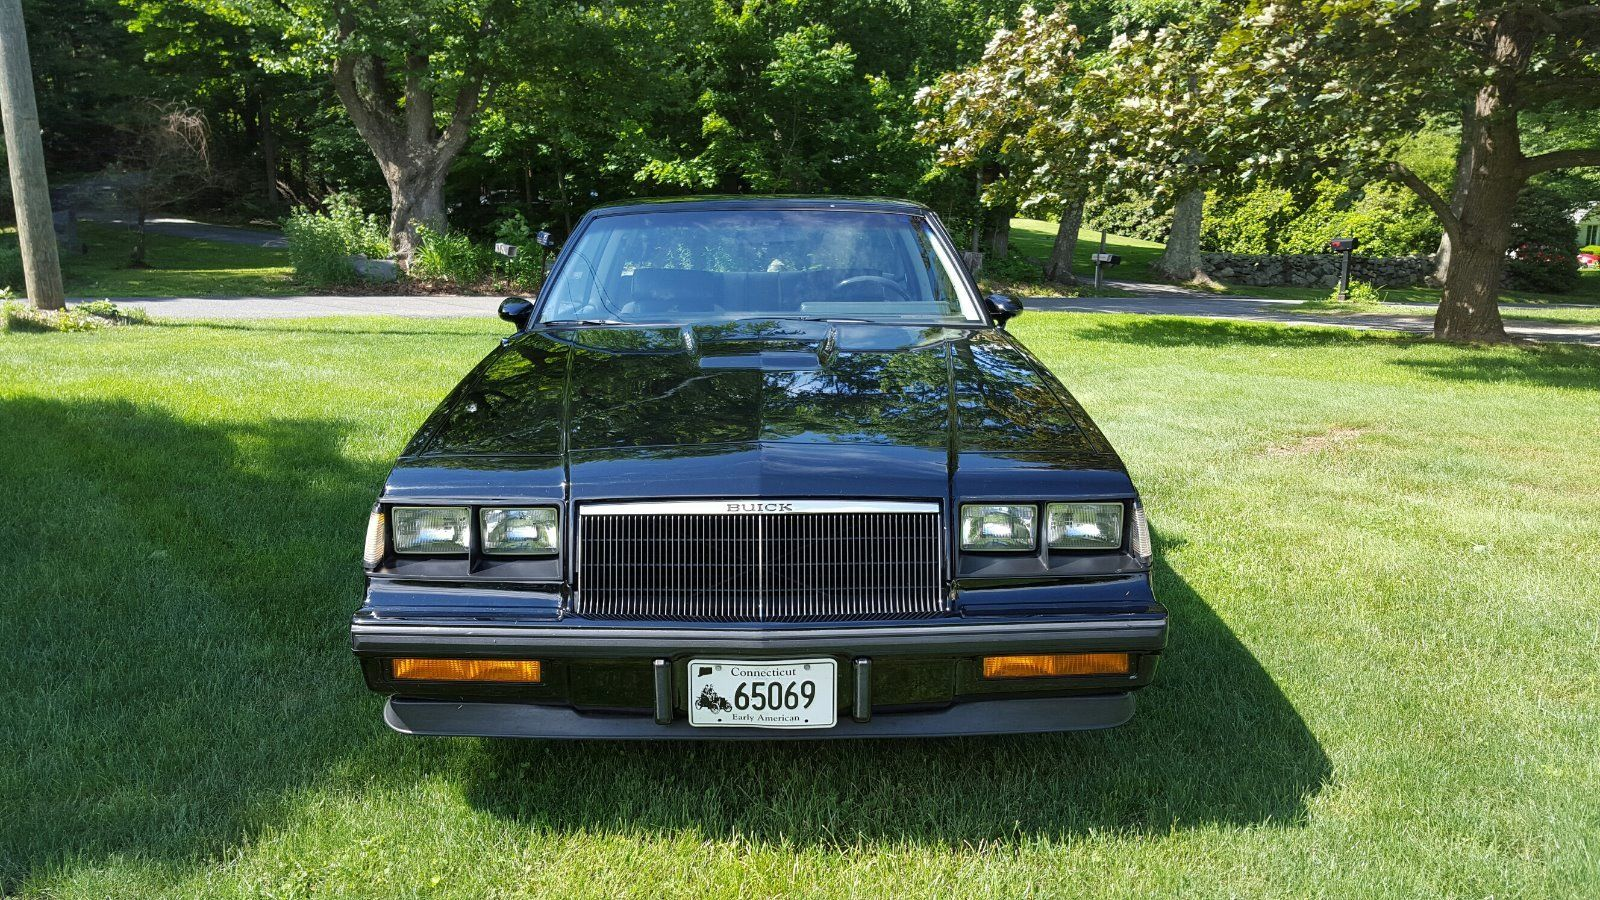 Buick Grand National For Sale on 1987 Buick Lesabre T Type